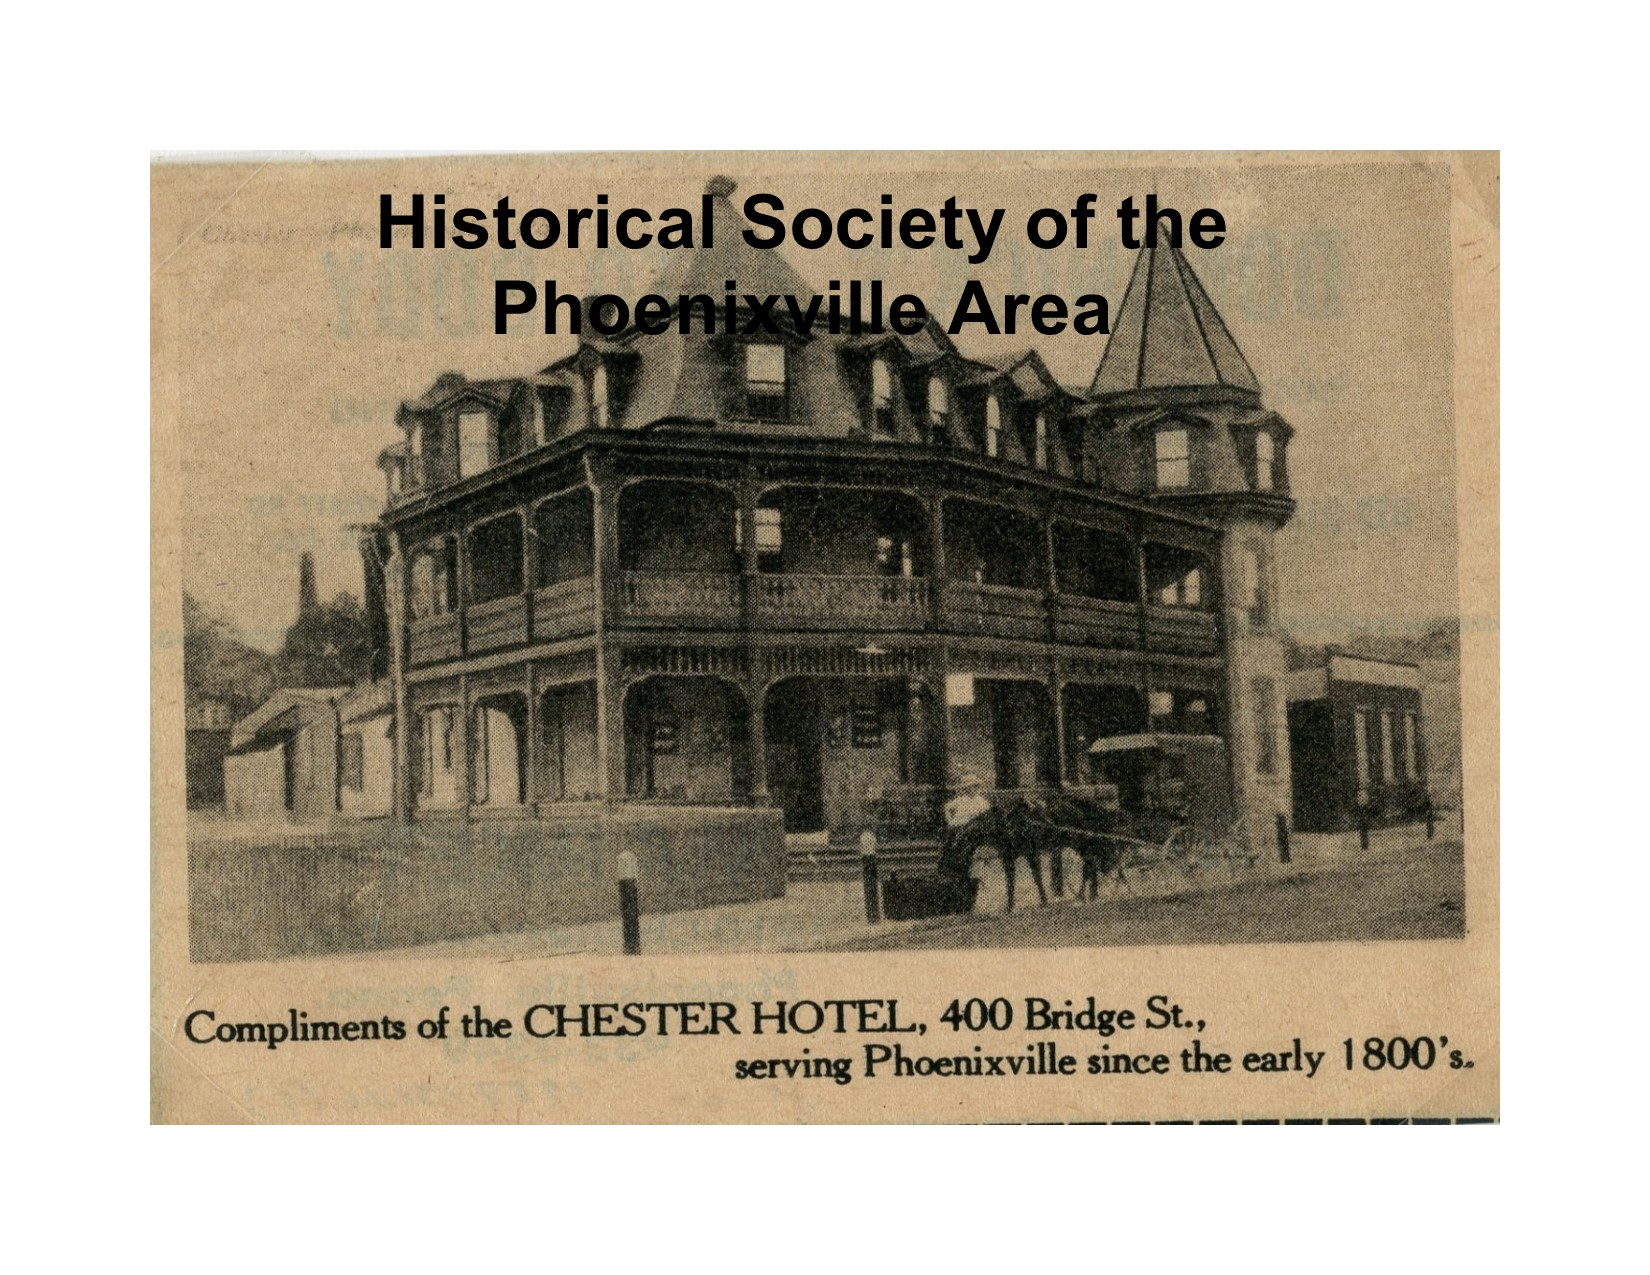 Chester Hotel 400 Bridge Street Late 1800 S Photo 1989 131 16w 9